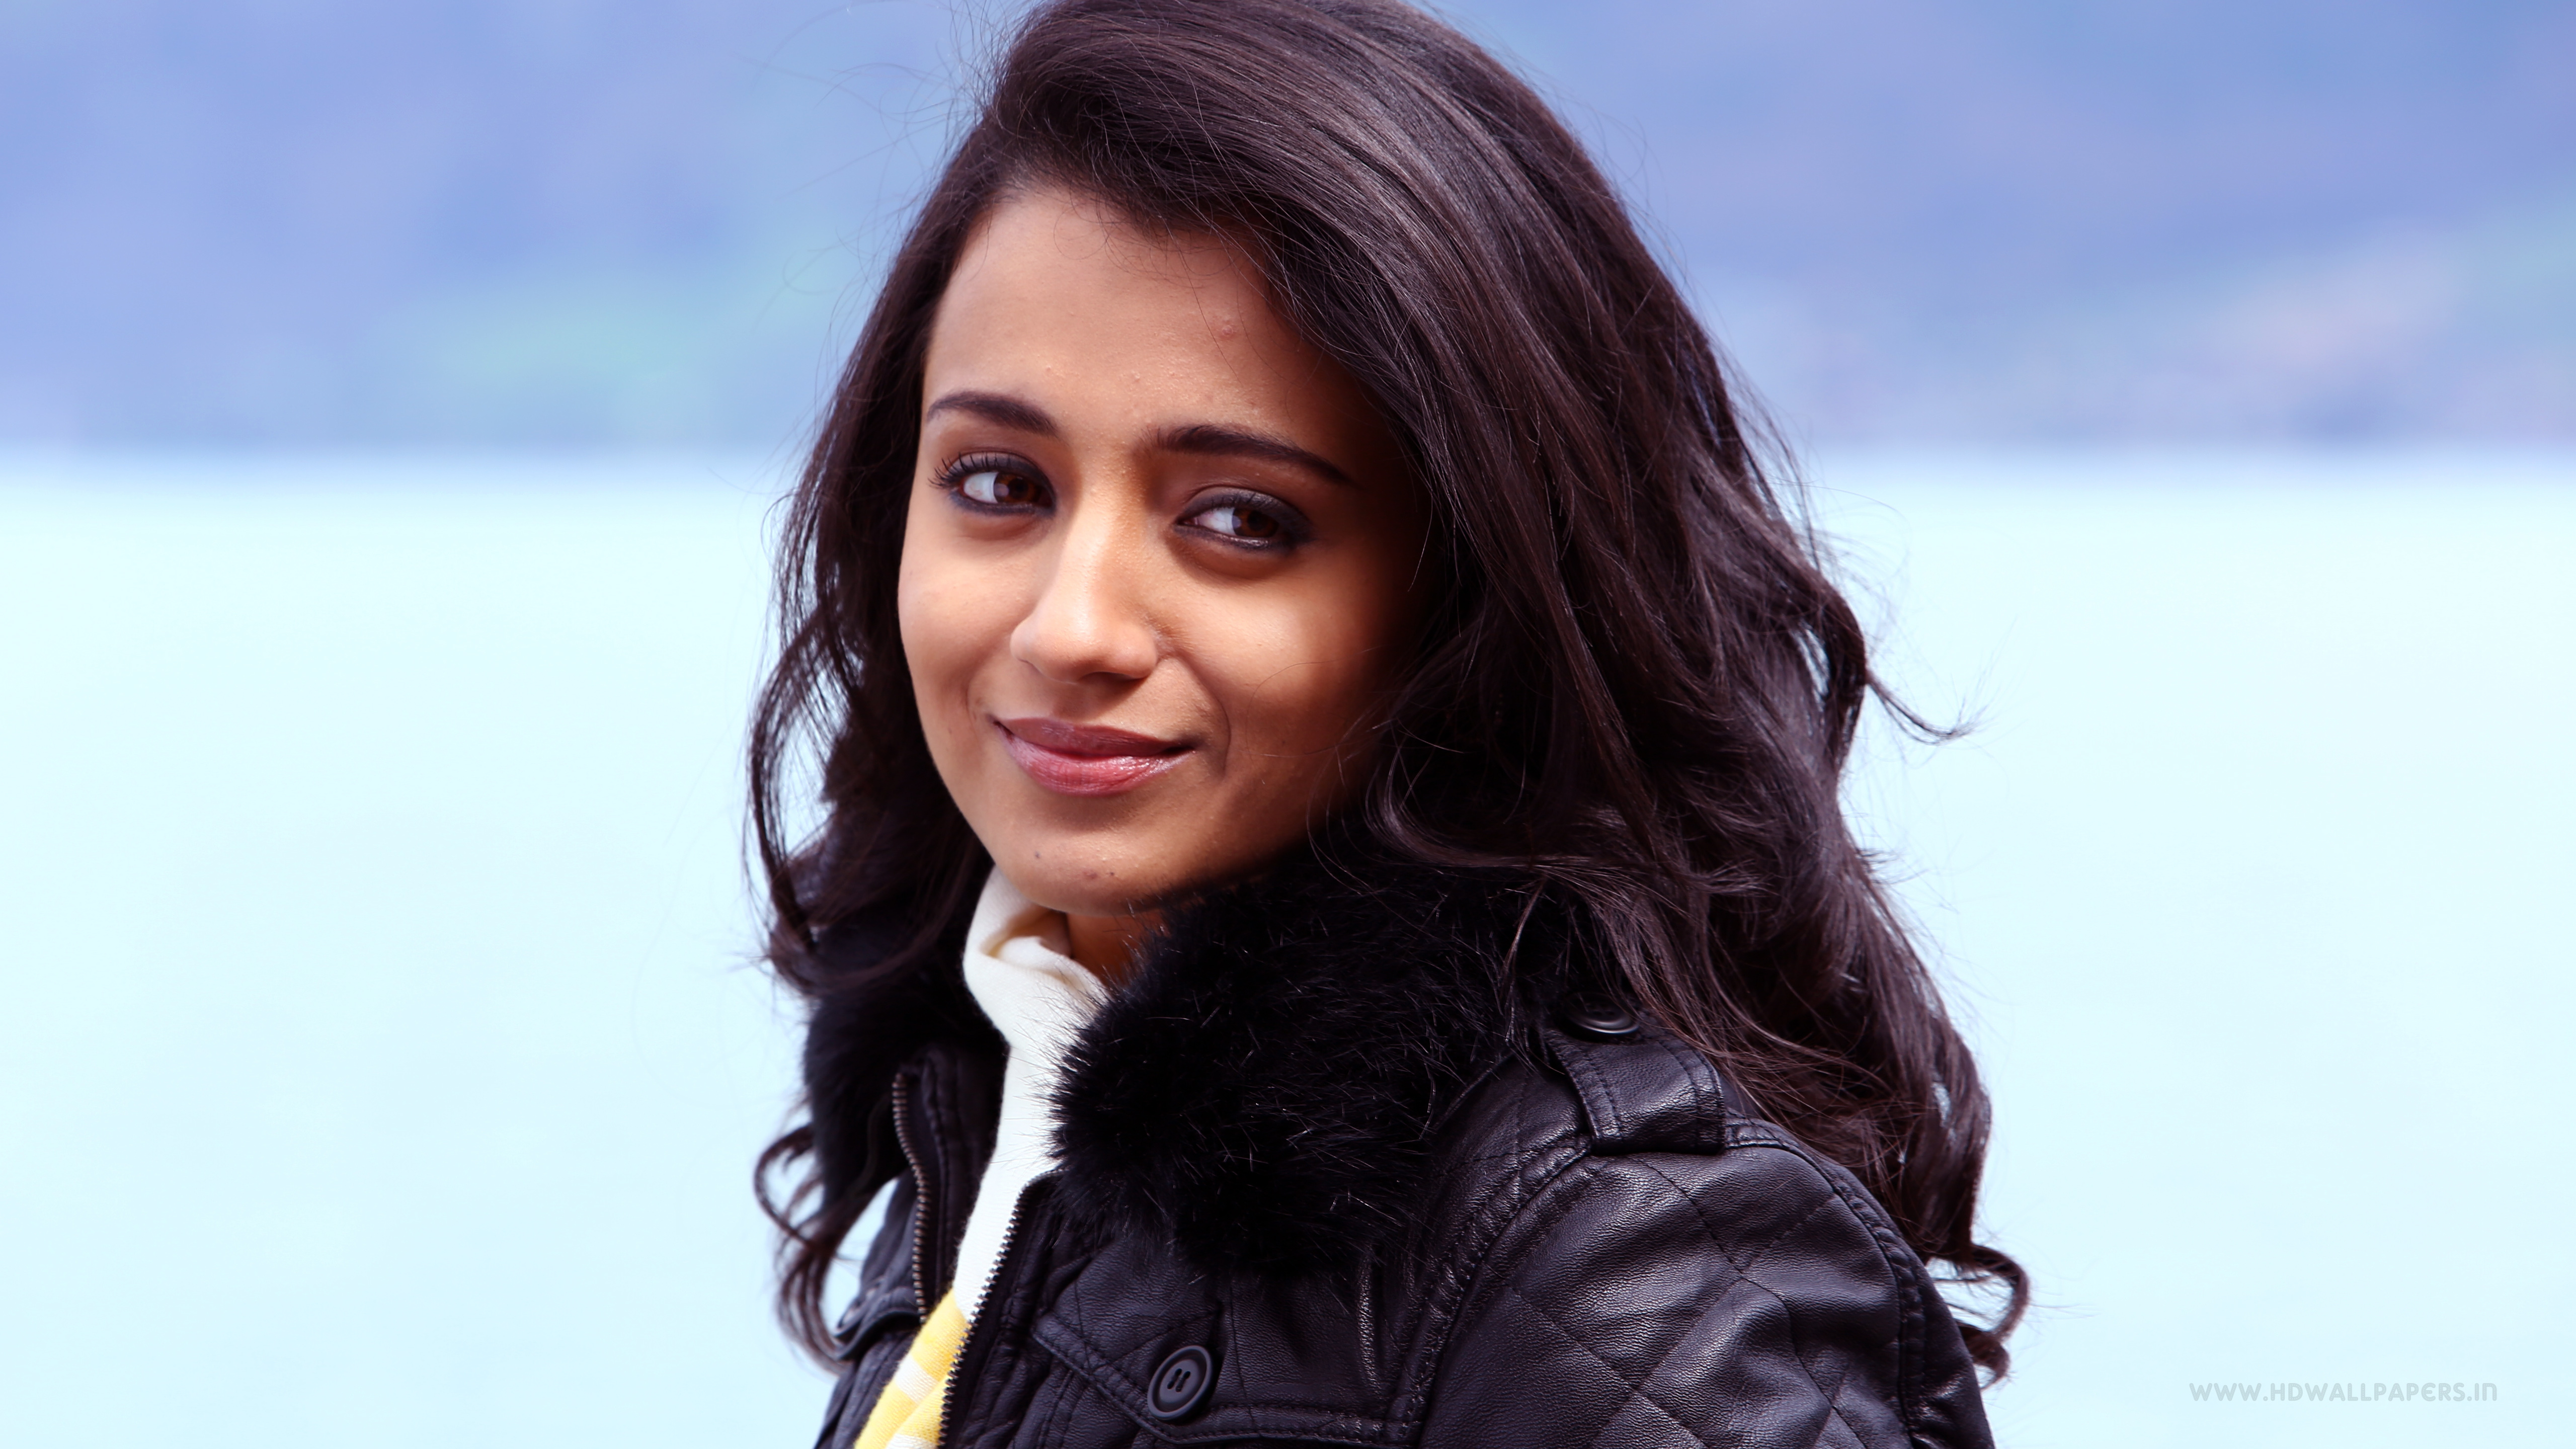 trisha wallpapers, photos and desktop backgrounds up to 8k